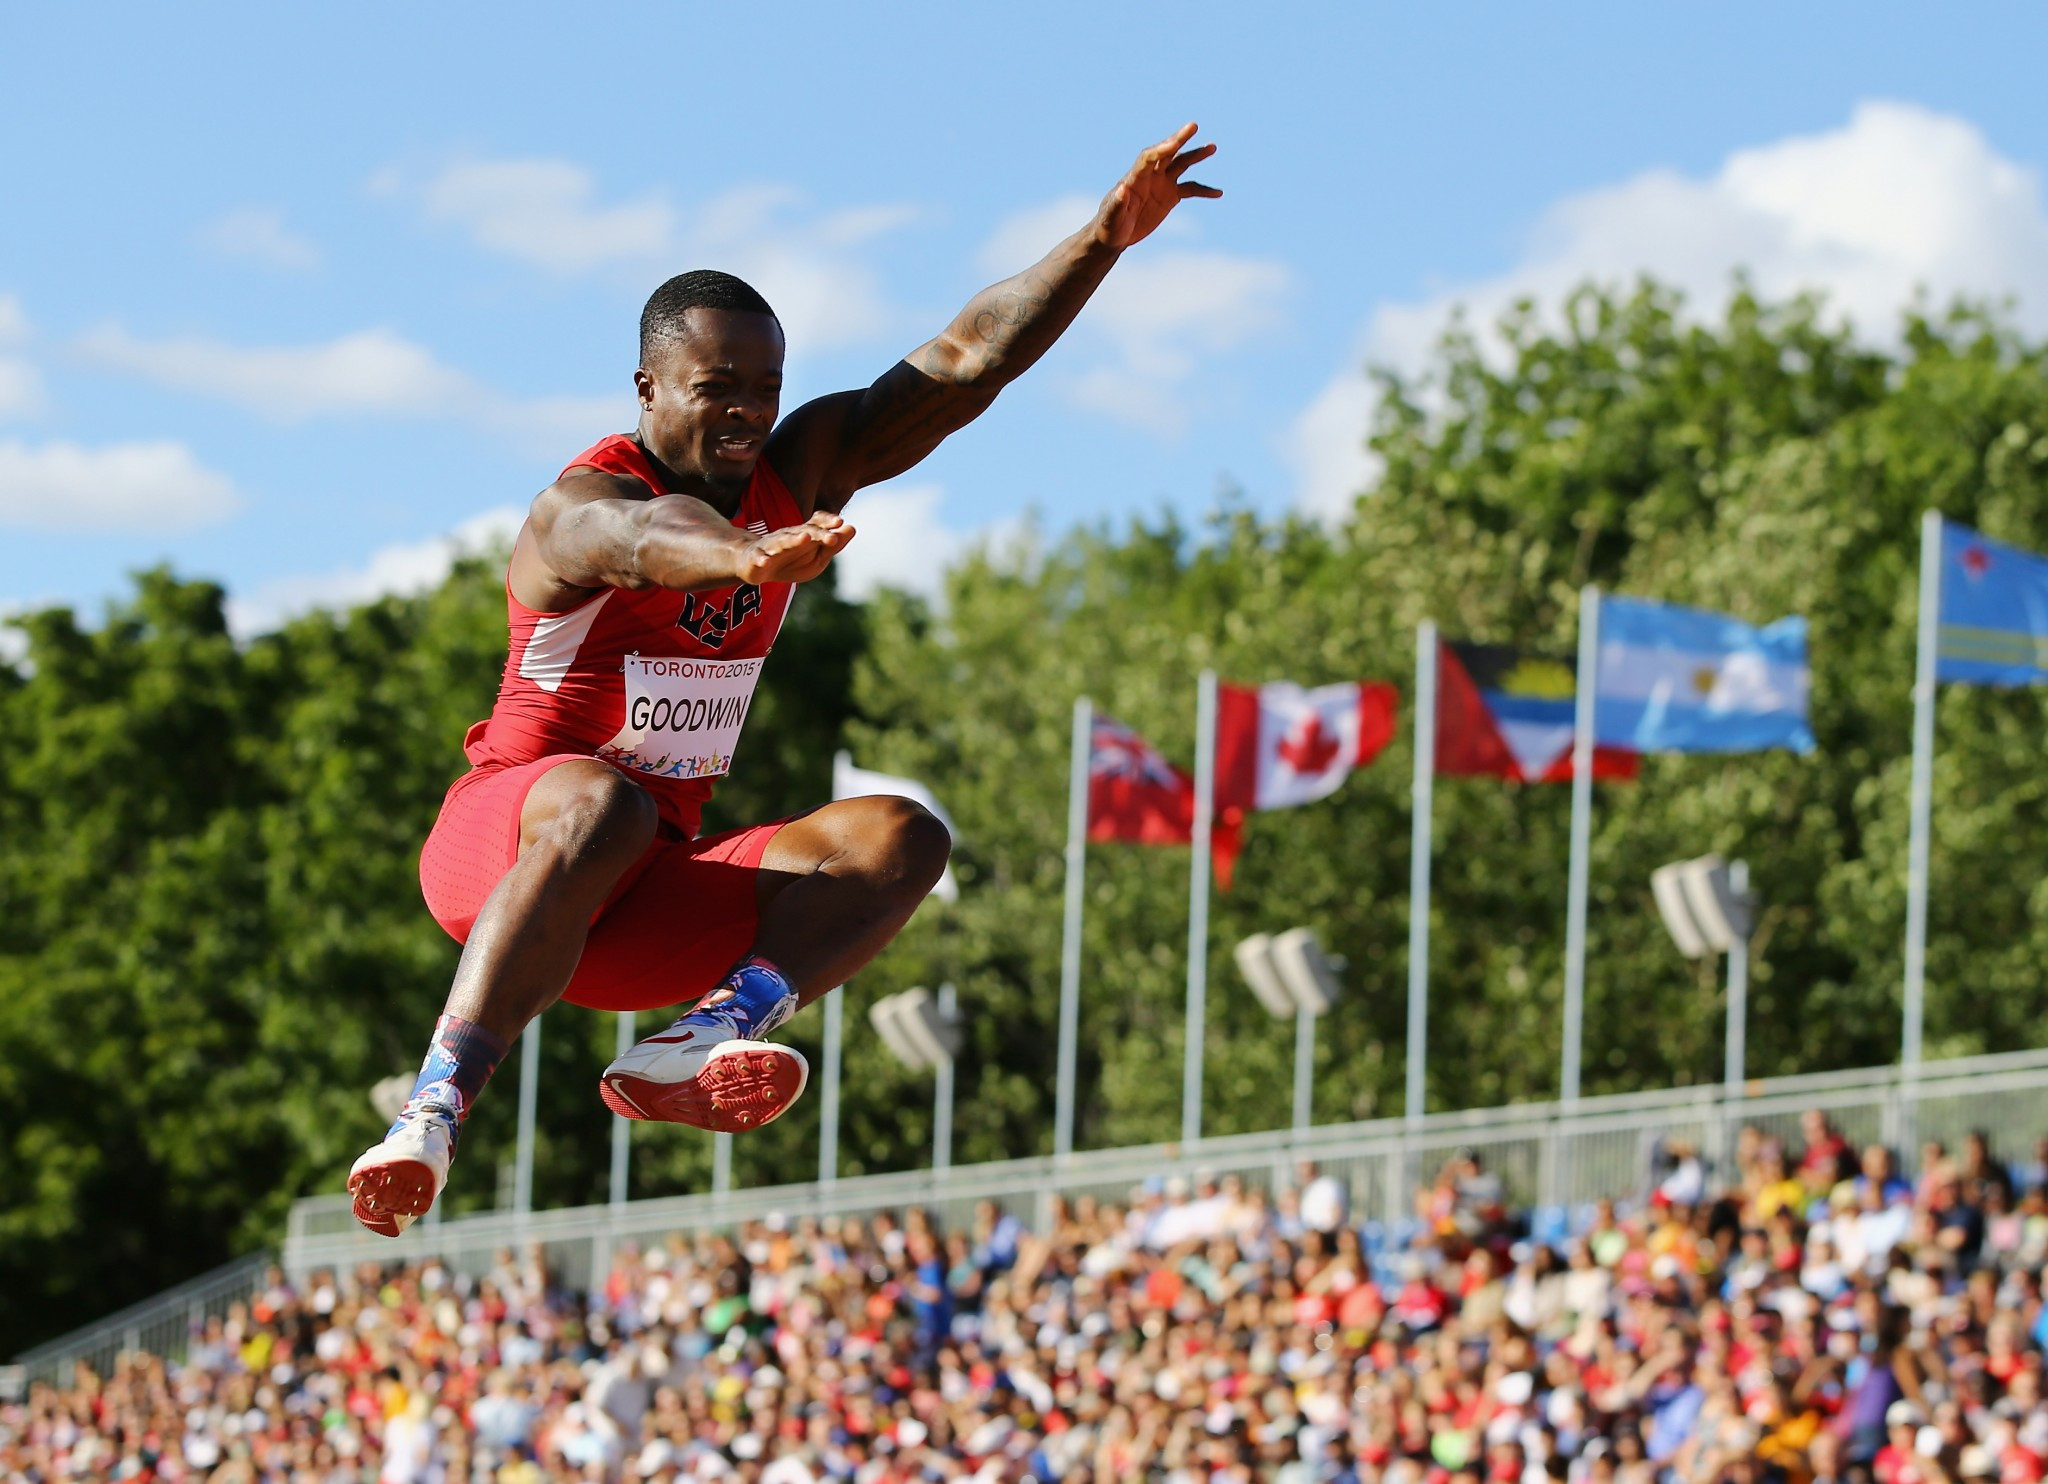 Marquise Goodwin pictured competing at the 2015 Pan American Games ©Getty Images